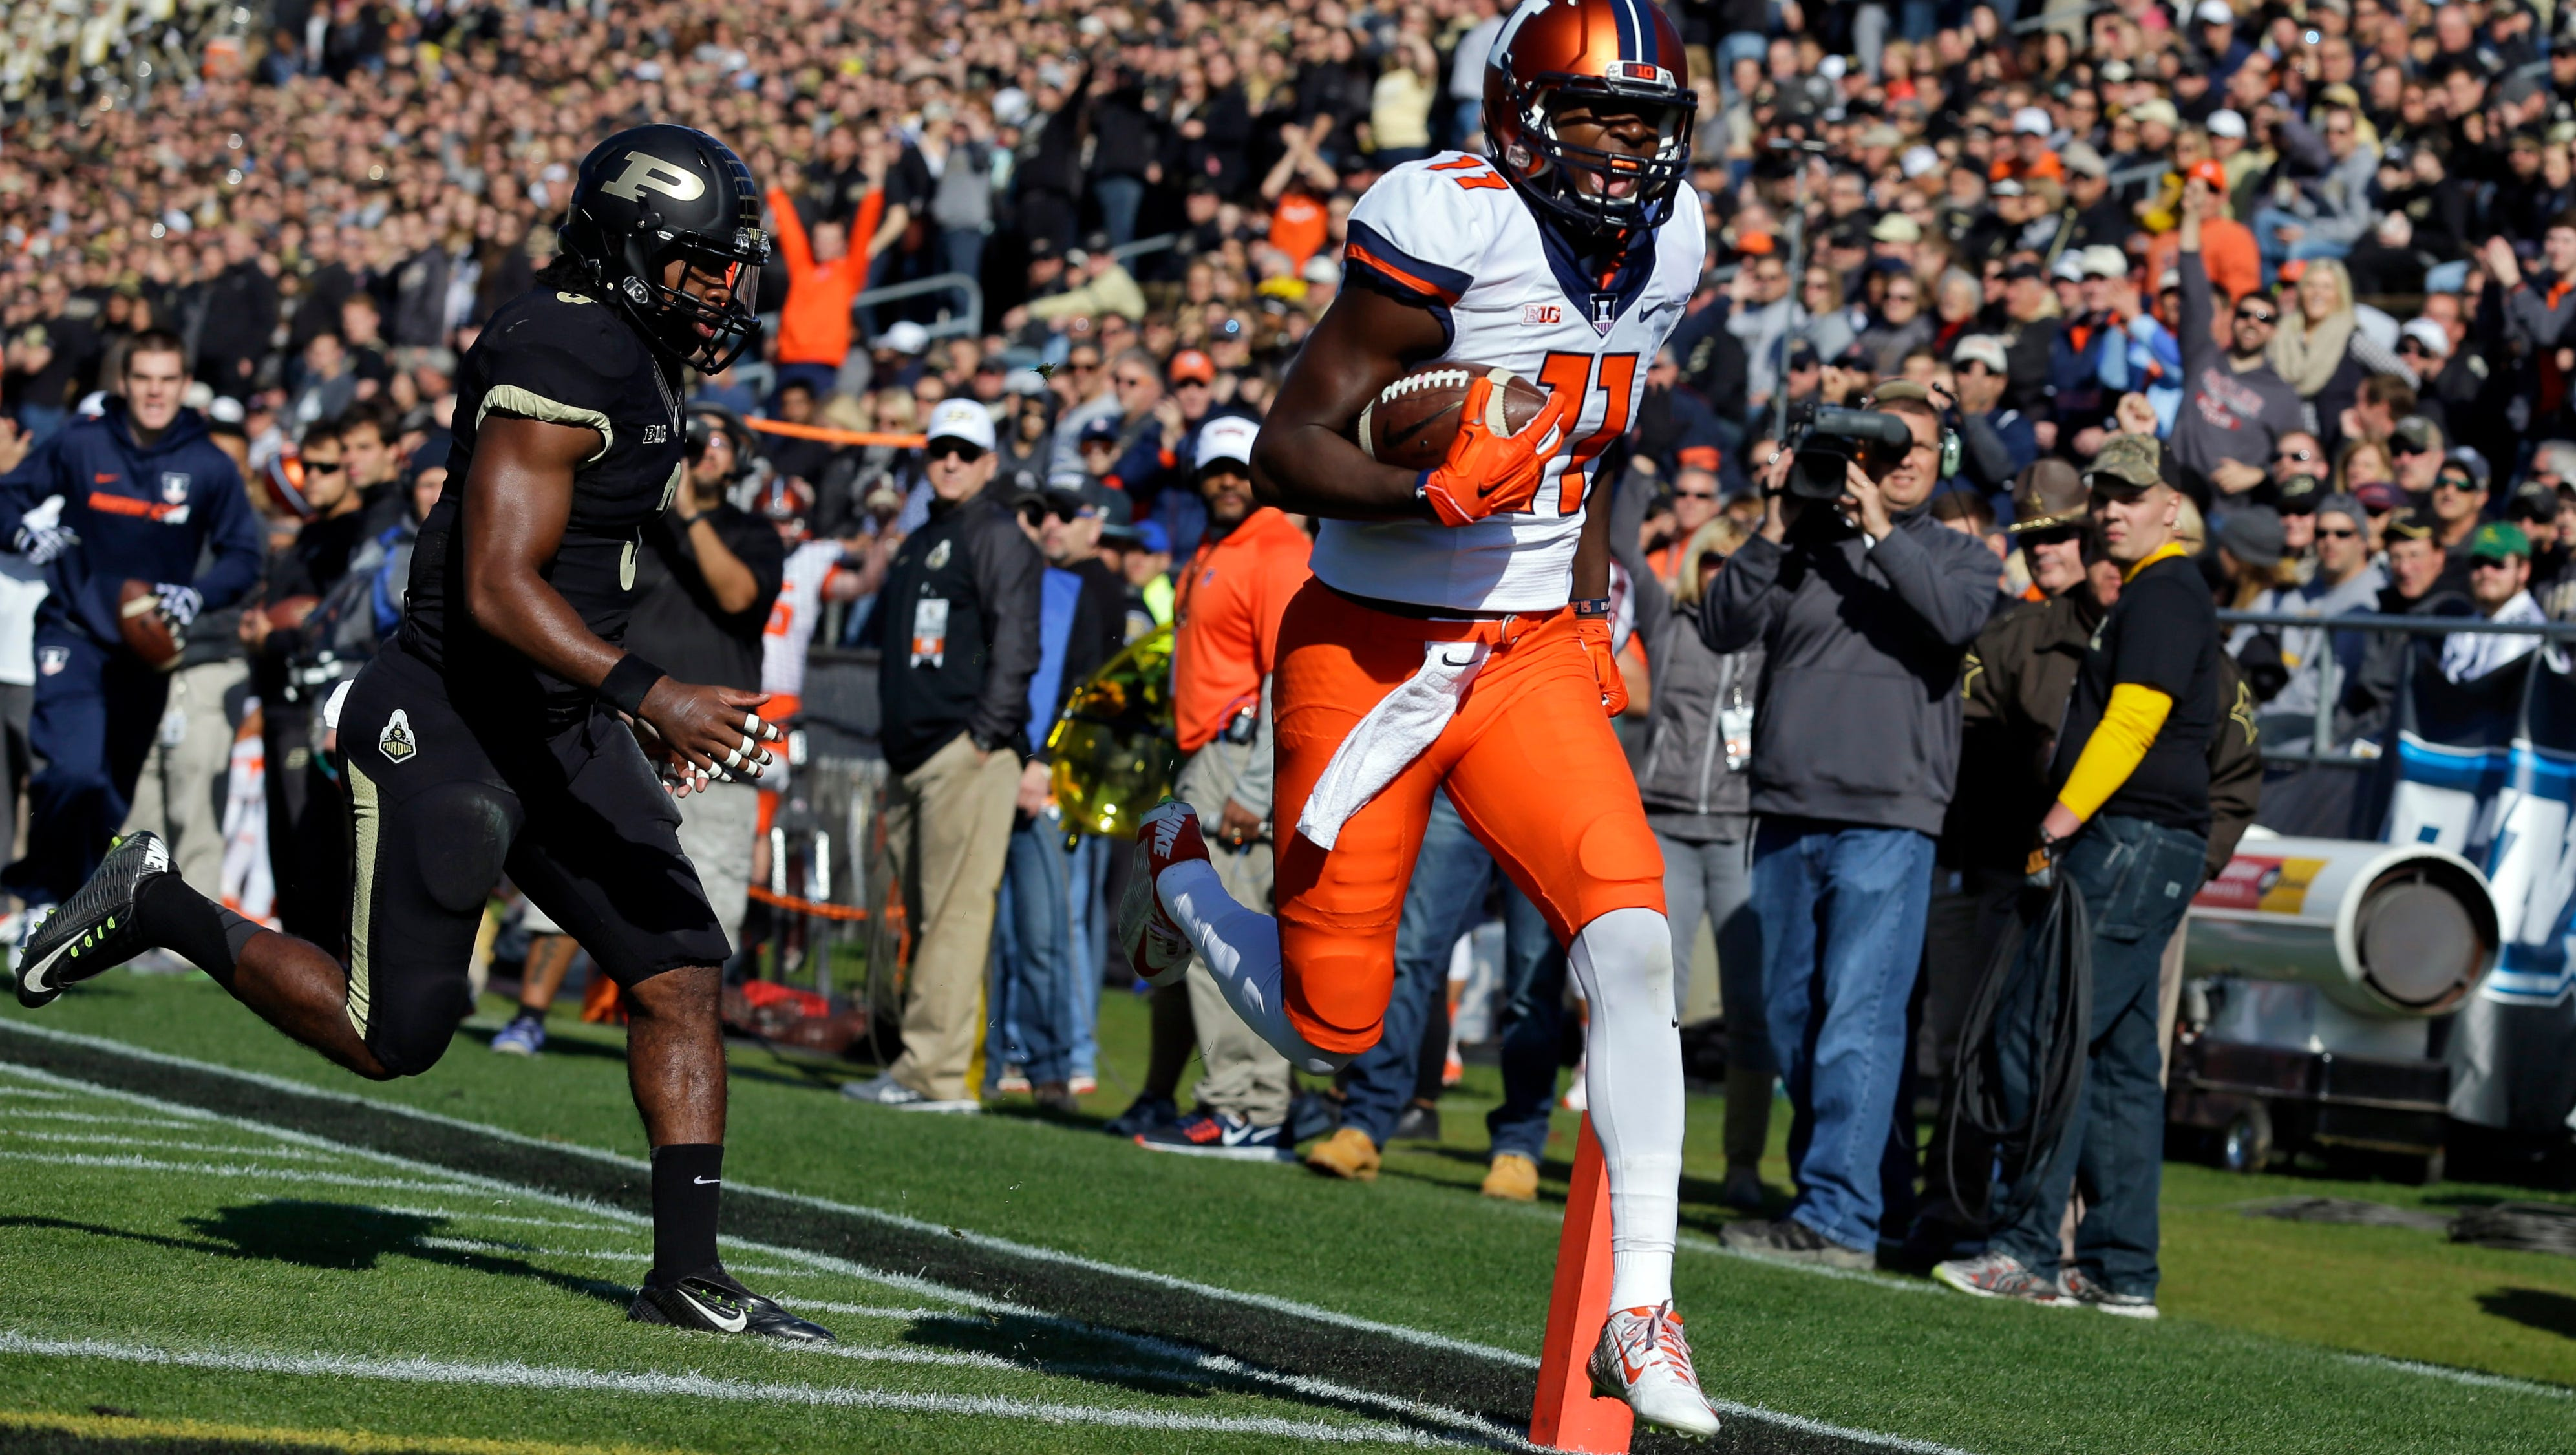 Illinois Snaps Losing Skid With 48 14 Win Over Purdue